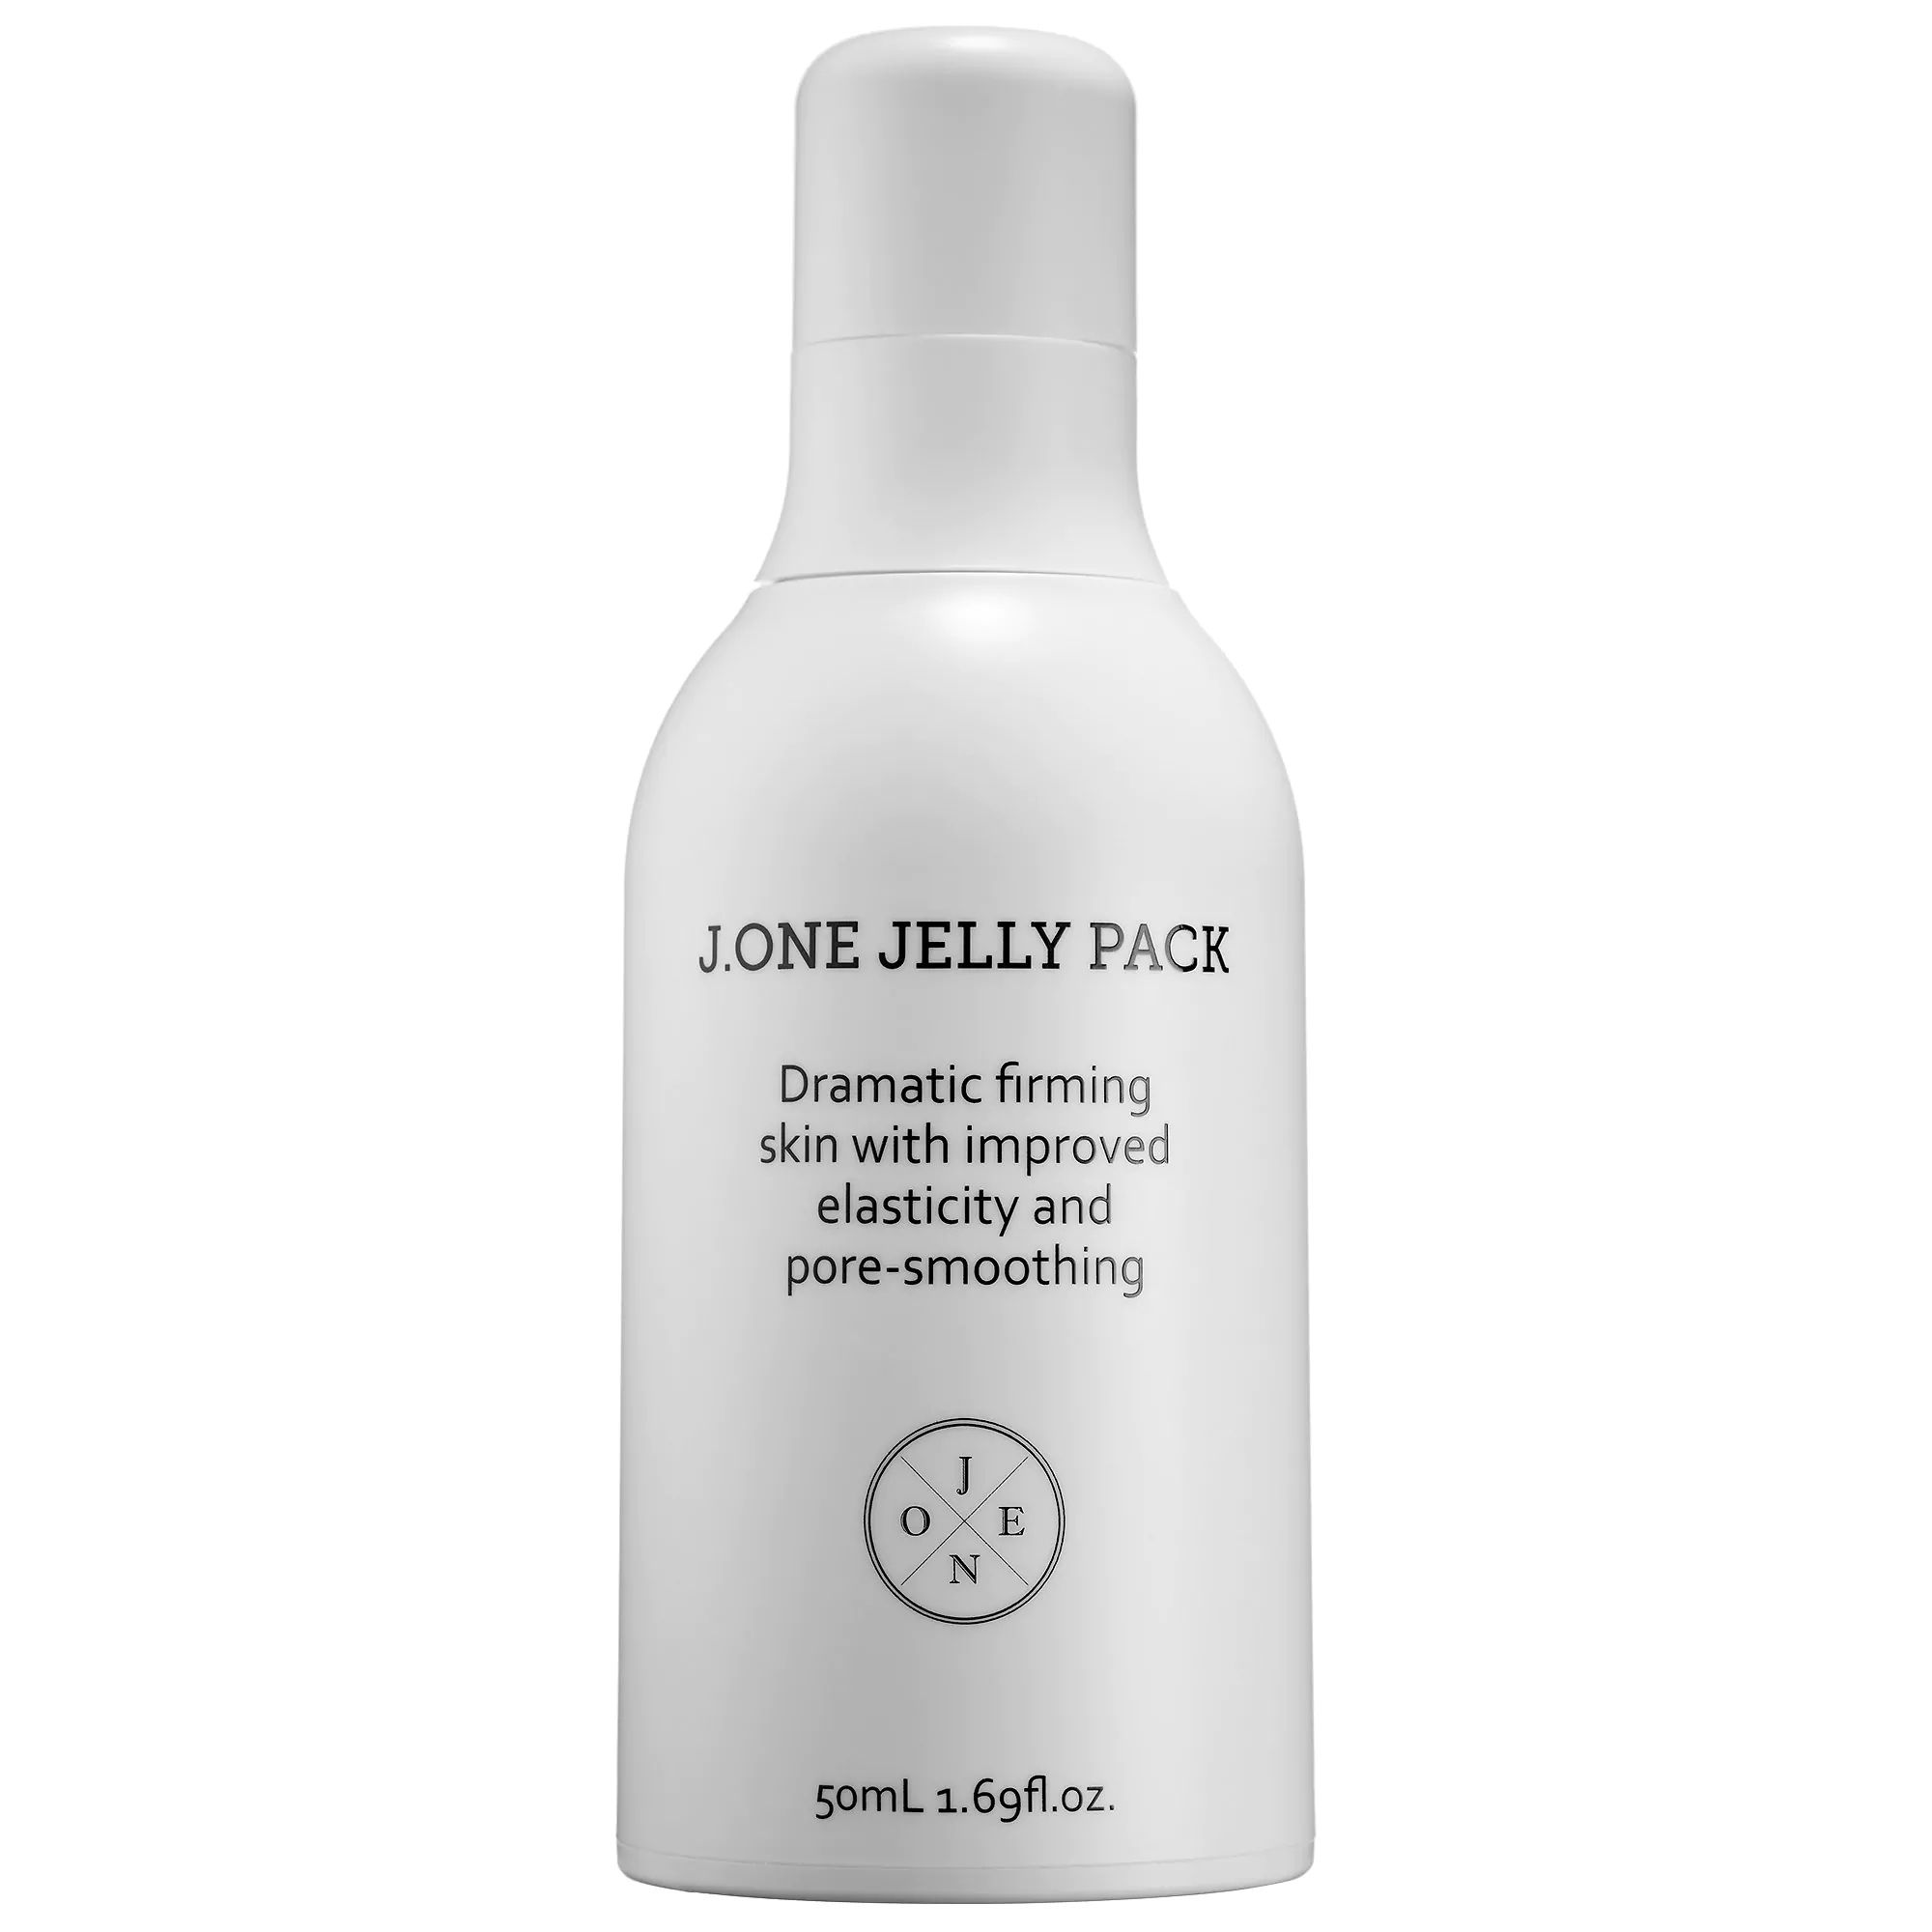 j one jelly pack